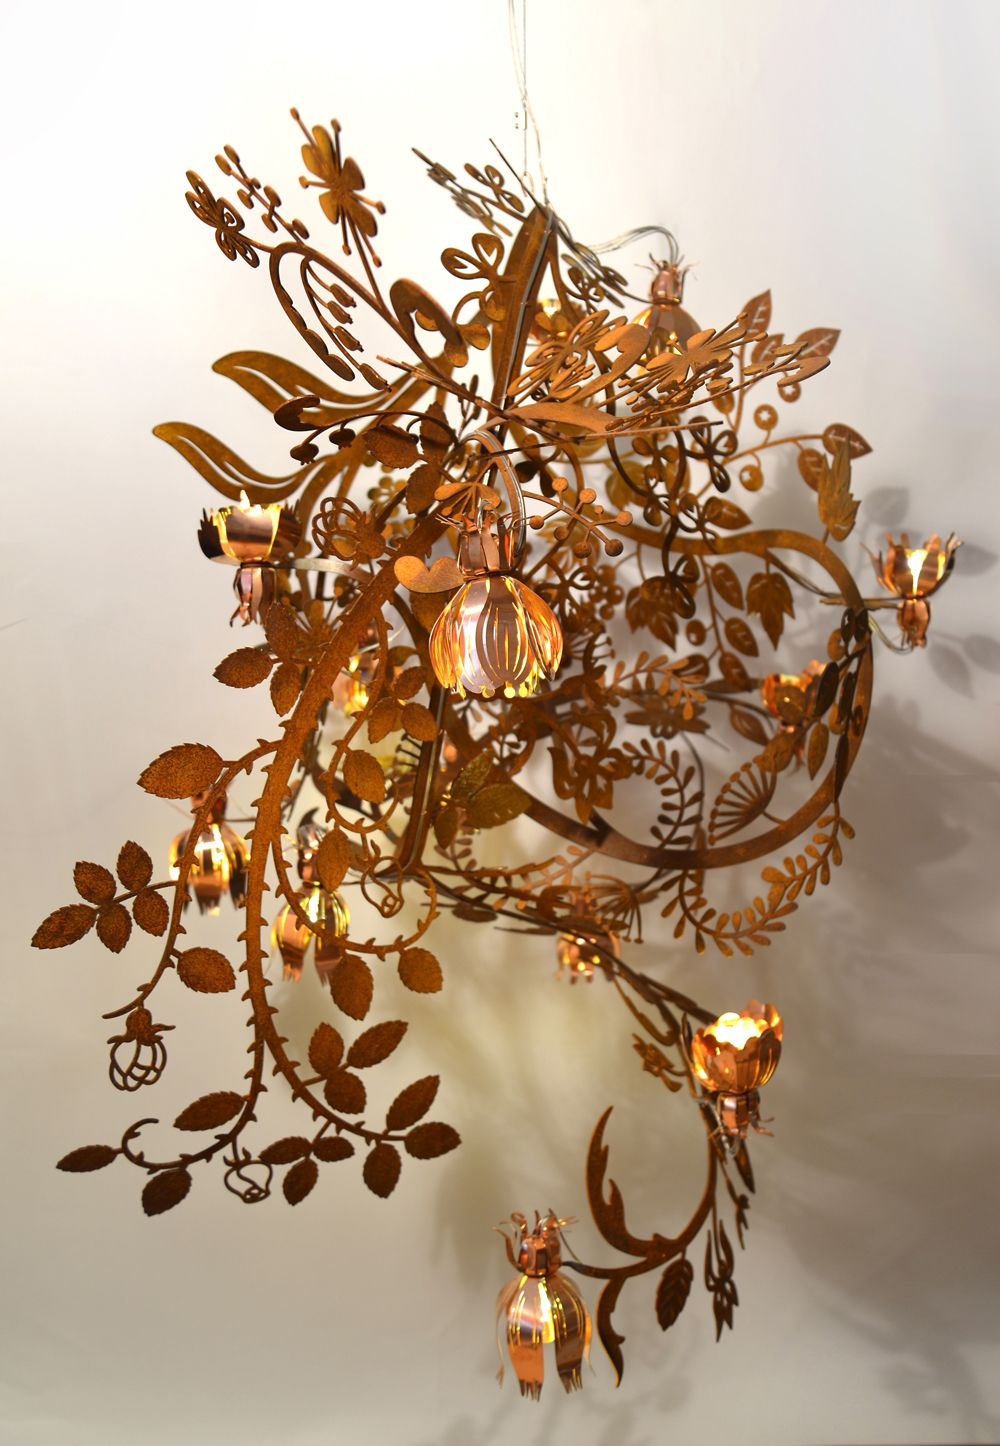 tord boontje lighting.  Boontje Botanical  Chandelier Rust Steel And Copper Lighting Studio Tord  Boontje And B